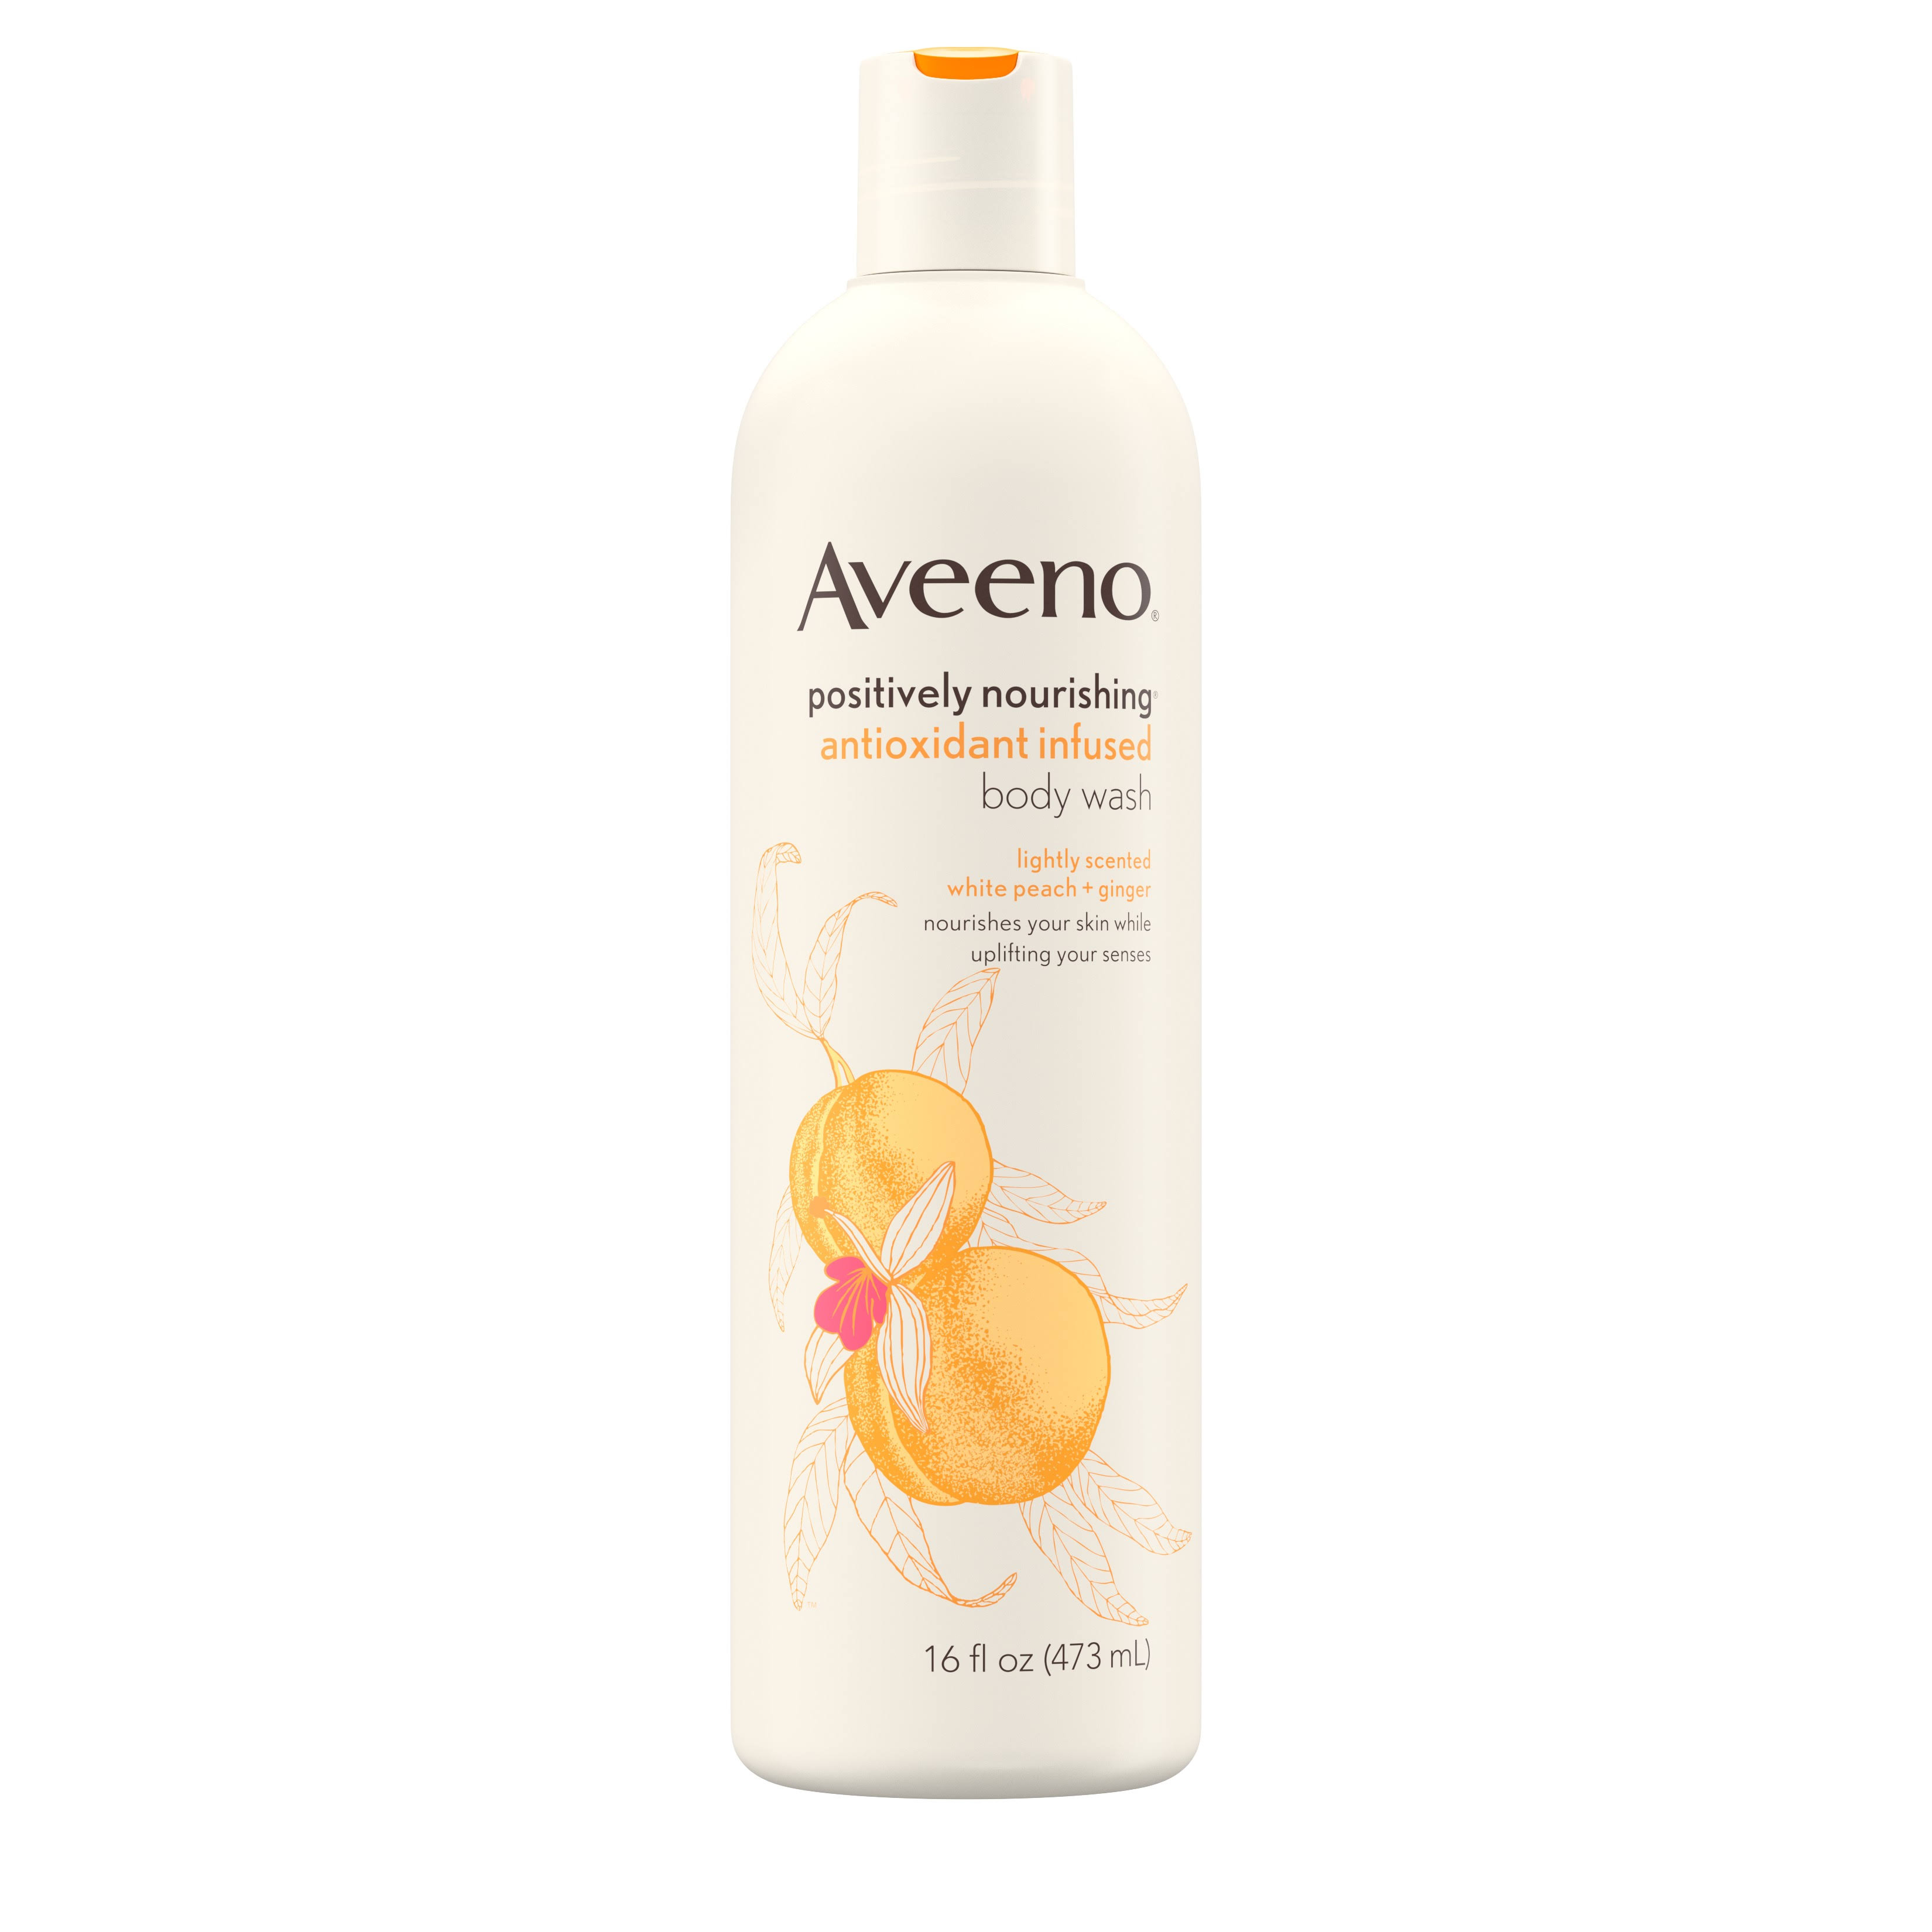 Aveeno Positively Nourishing Antioxidant - 473ml, White Peach And Ginger